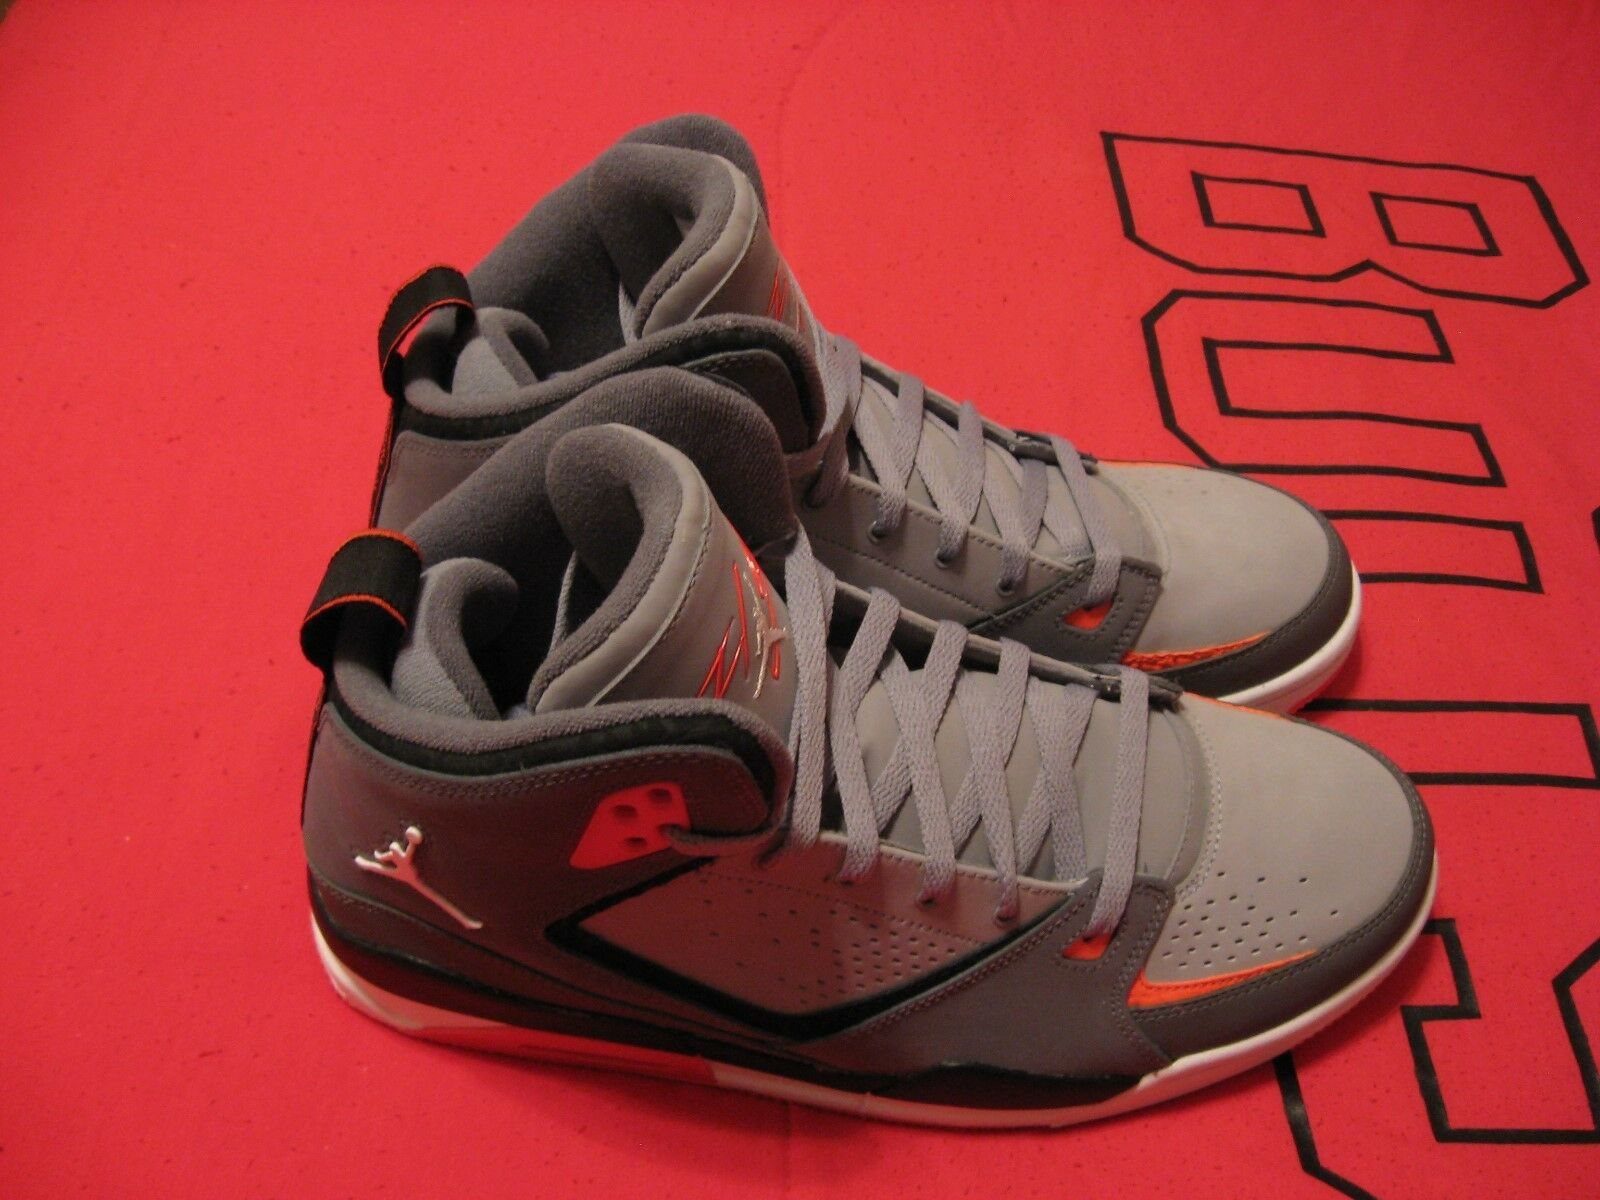 Brand New Nike Air Jordan SC2 Grey, Black, Orange, And White Shoes